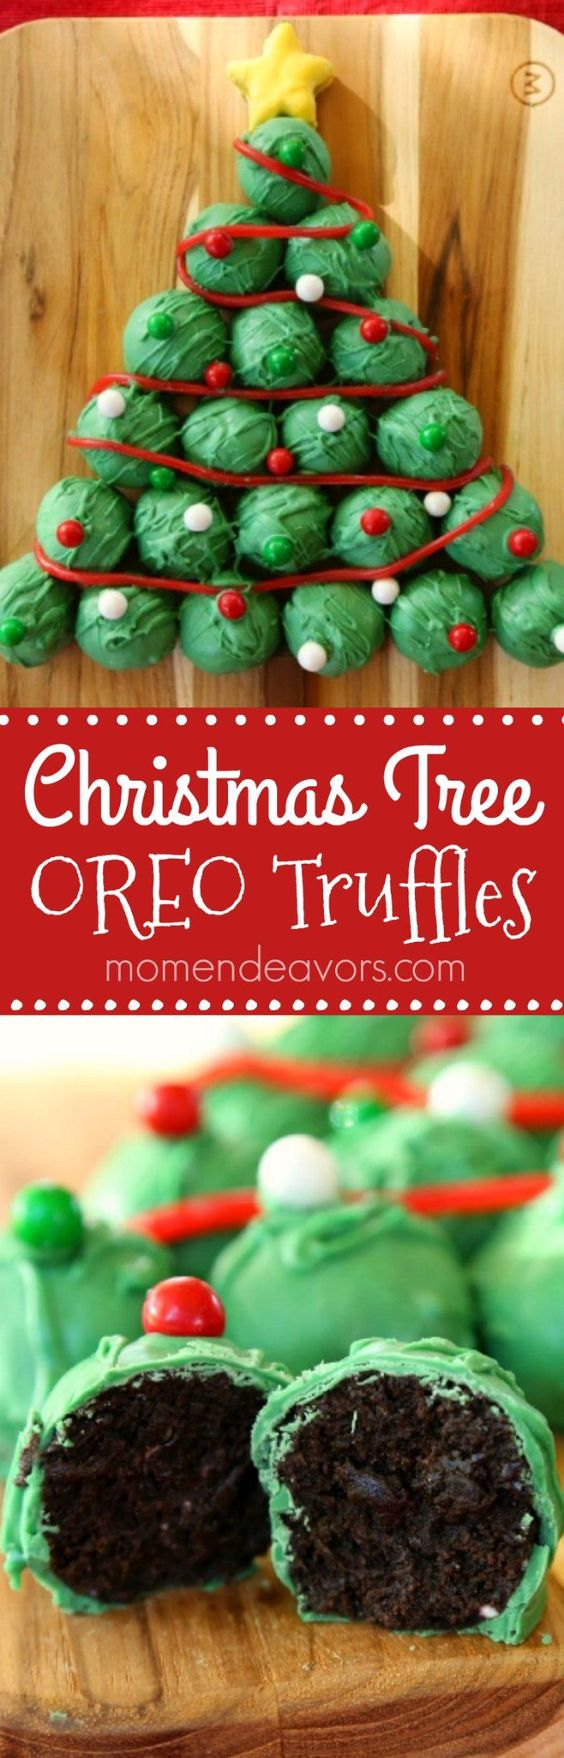 OREO Truffles Christmas Tree - an easy & delicious no-bake holiday treat!